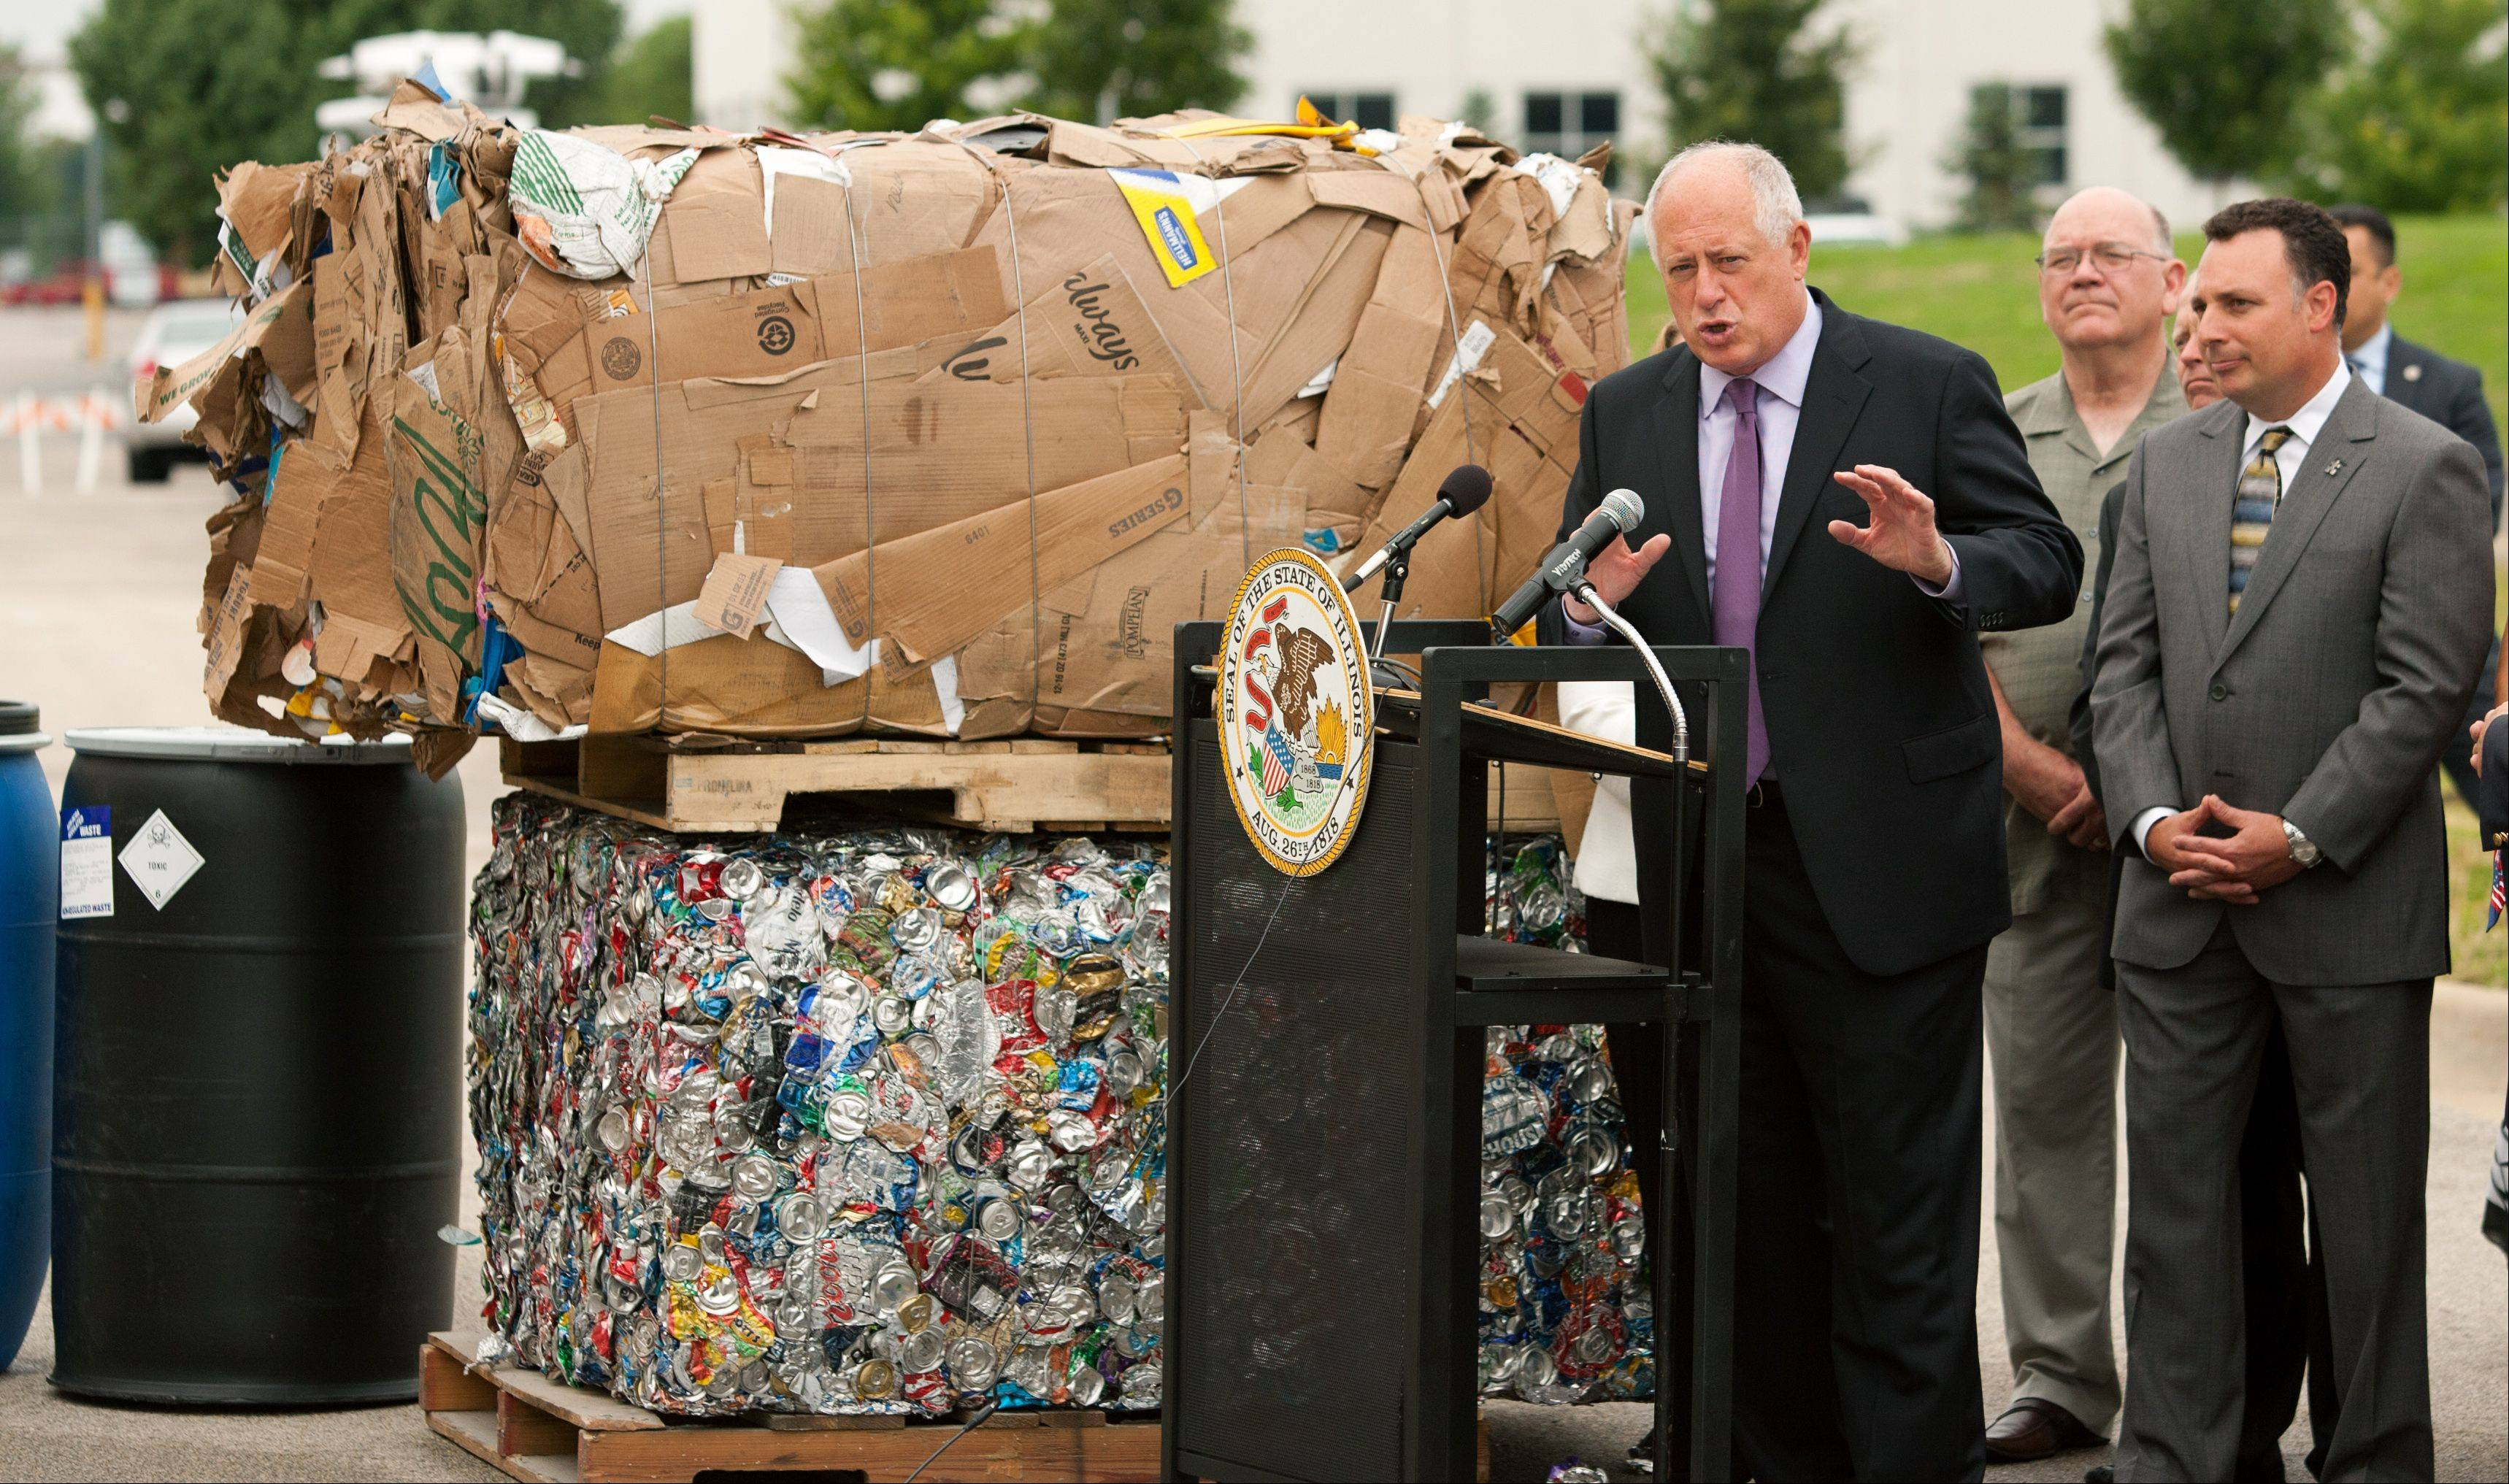 Blocks and barrels of recyclable material serve as the backdrop Friday as Gov. Pat Quinn announces a $900,000 state investment to help the city of Naperville build a new environmental collection center.